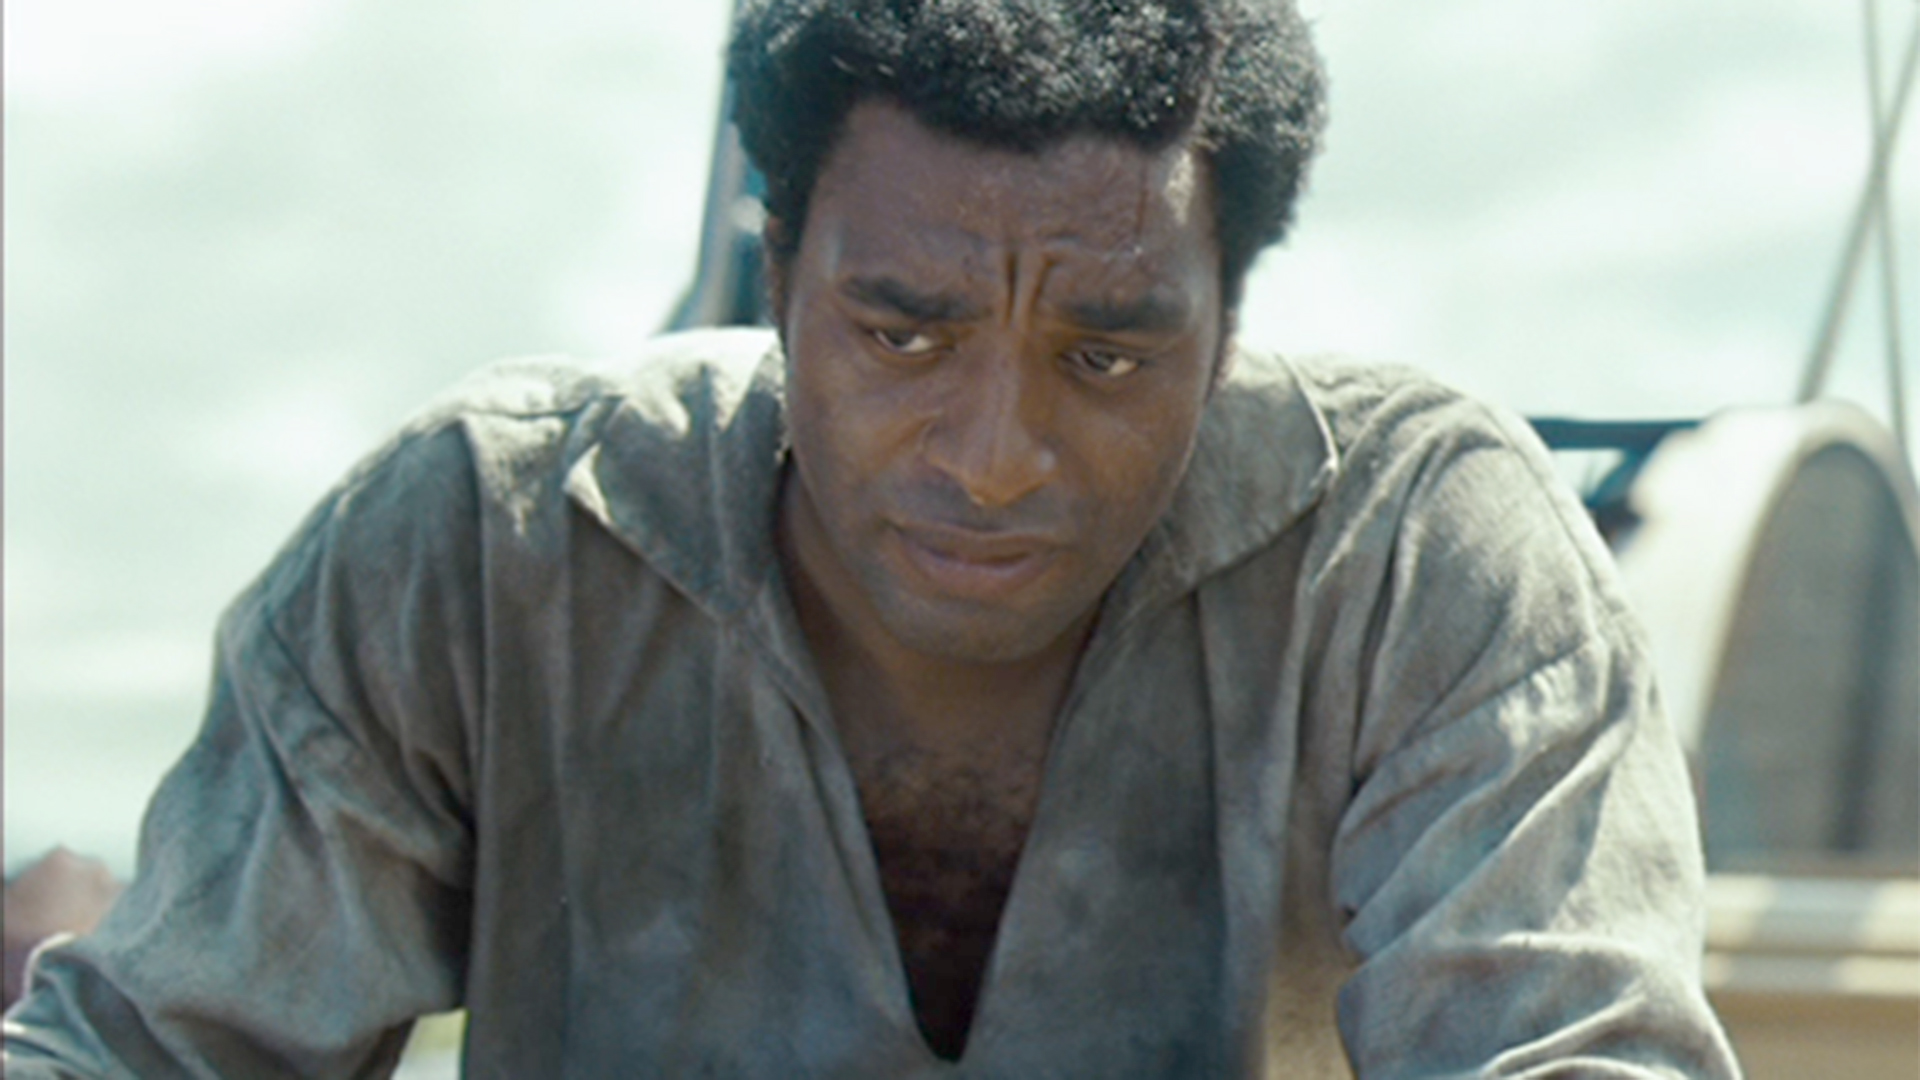 an analysis of image text and story in 12 years a slave He was in bondage for 12 years in louisiana before he was text edit twelve years a slave is in the complete story of the author of twelve years a slave.